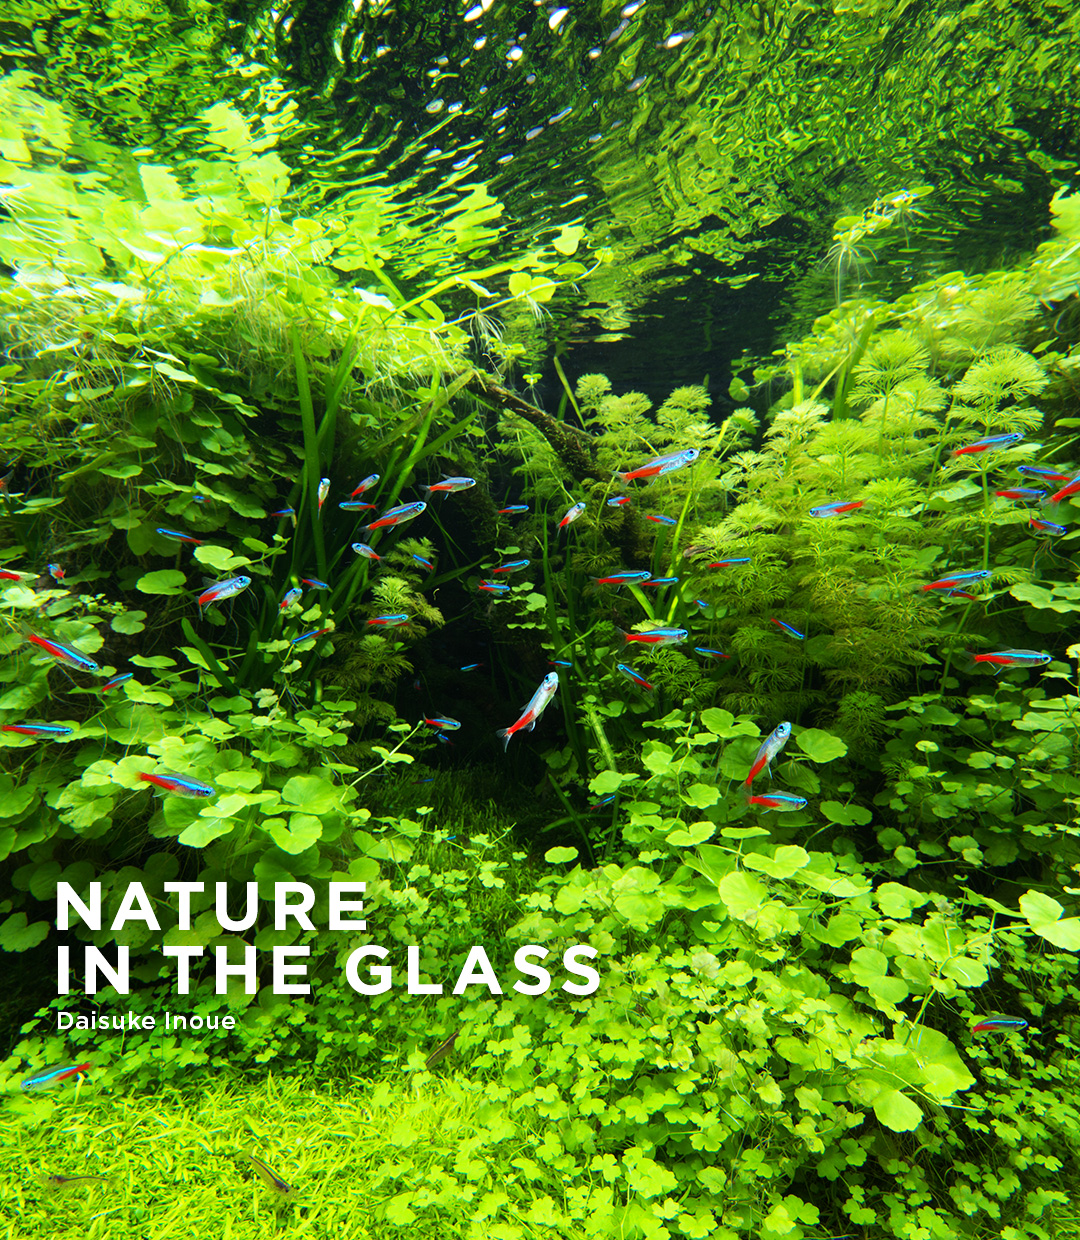 NATURE IN THE GLASS 'Green Heaven'